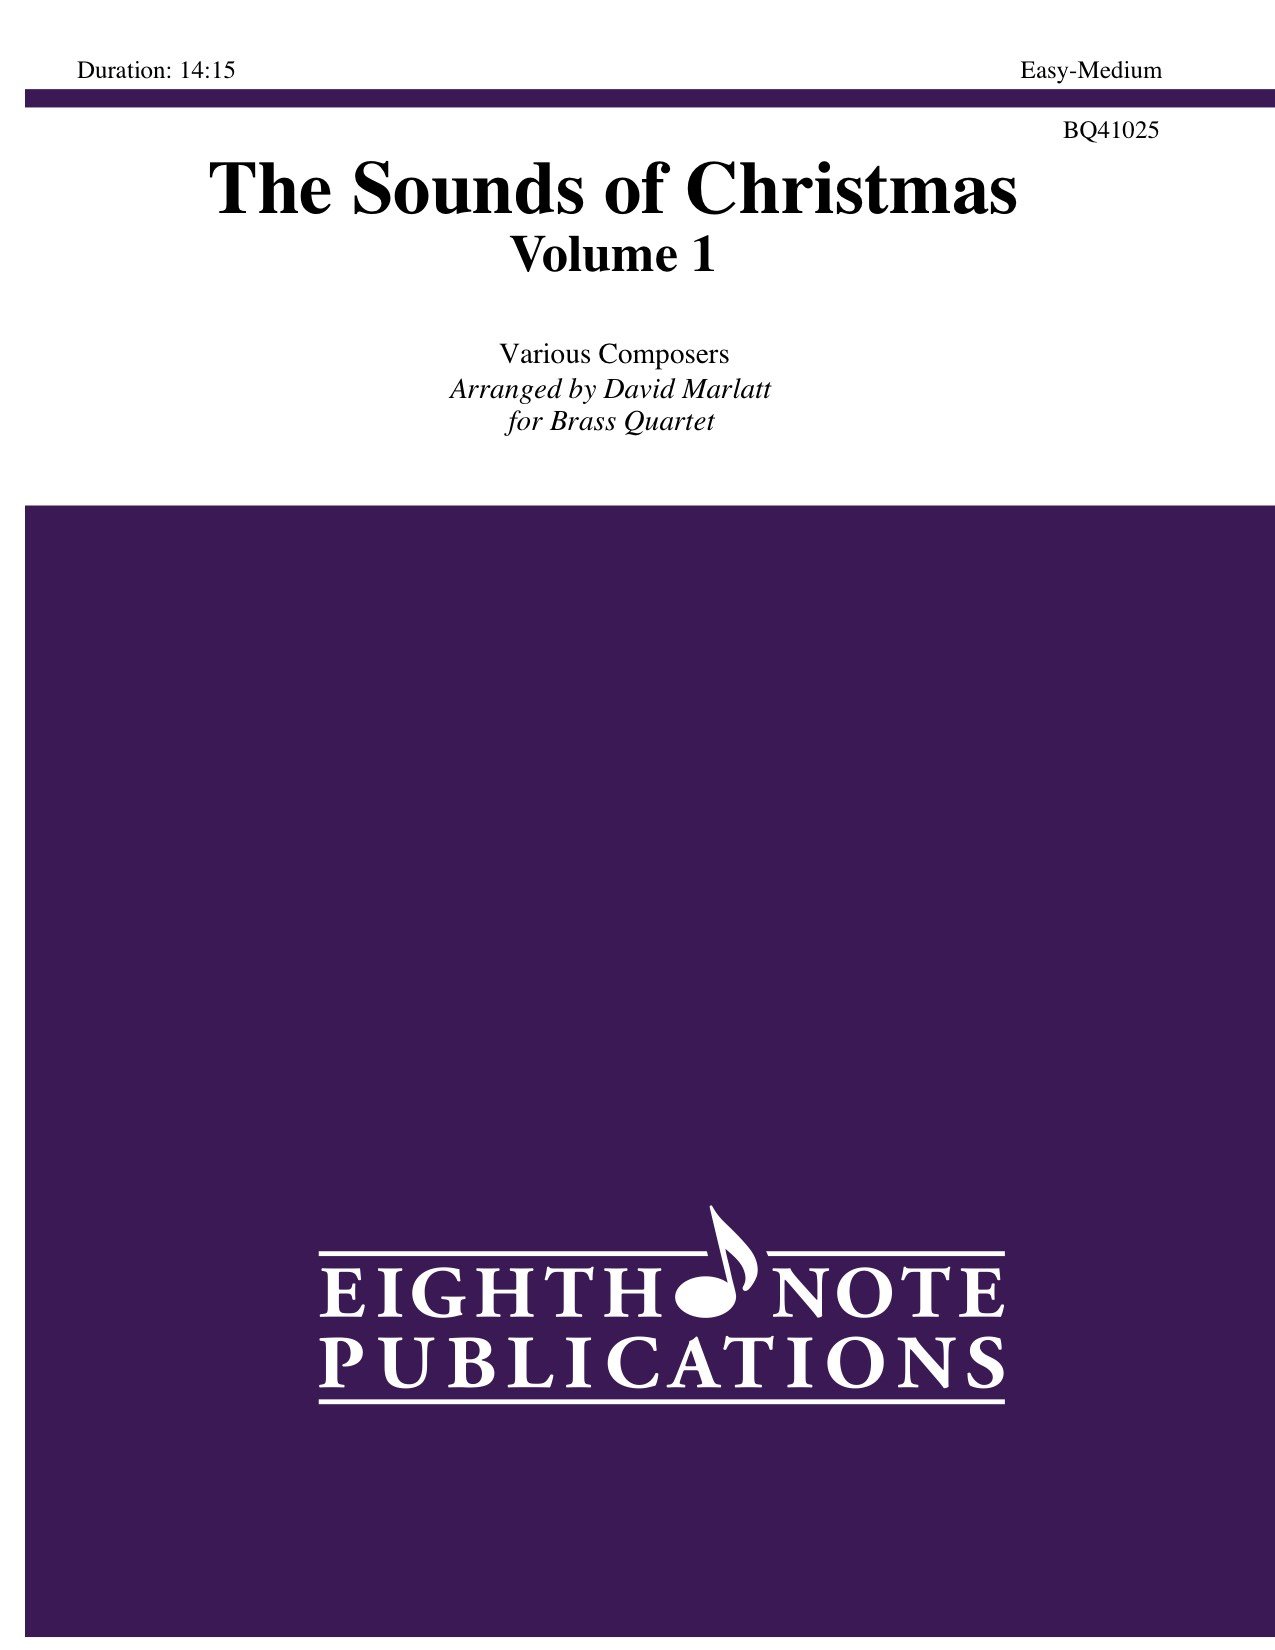 Sounds of Christmas, The - Volume 1 - Various Composers